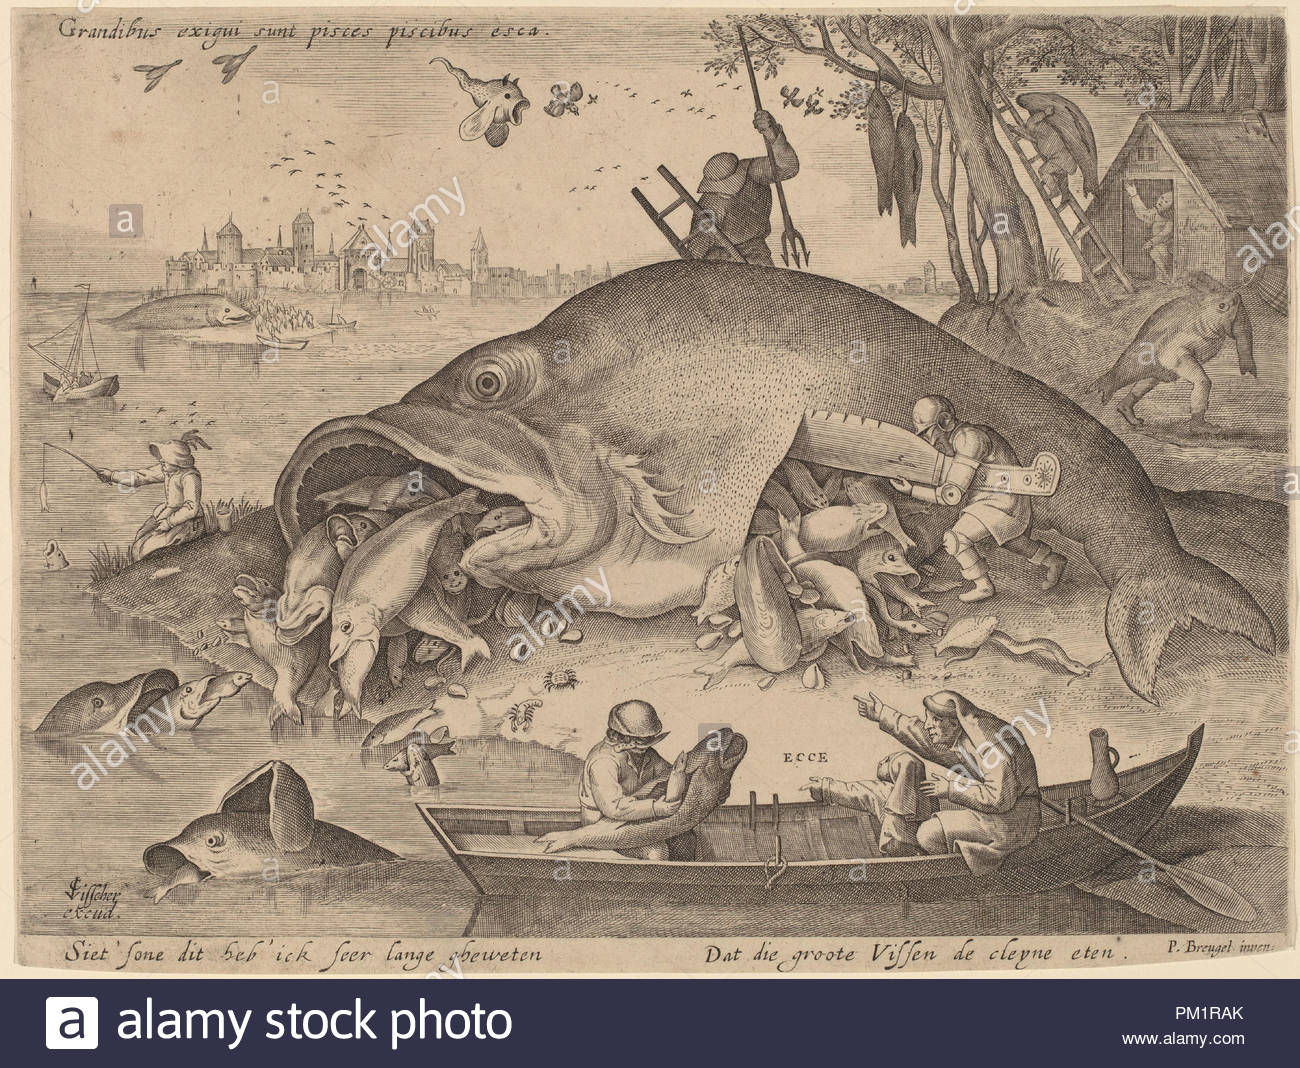 1619. Medium: engraving. Museum: National Gallery of Art, Washington DC.  Author: Hendrik Hondius after Pieter Bruegel the Elder (after Hieronymus  Bosch?